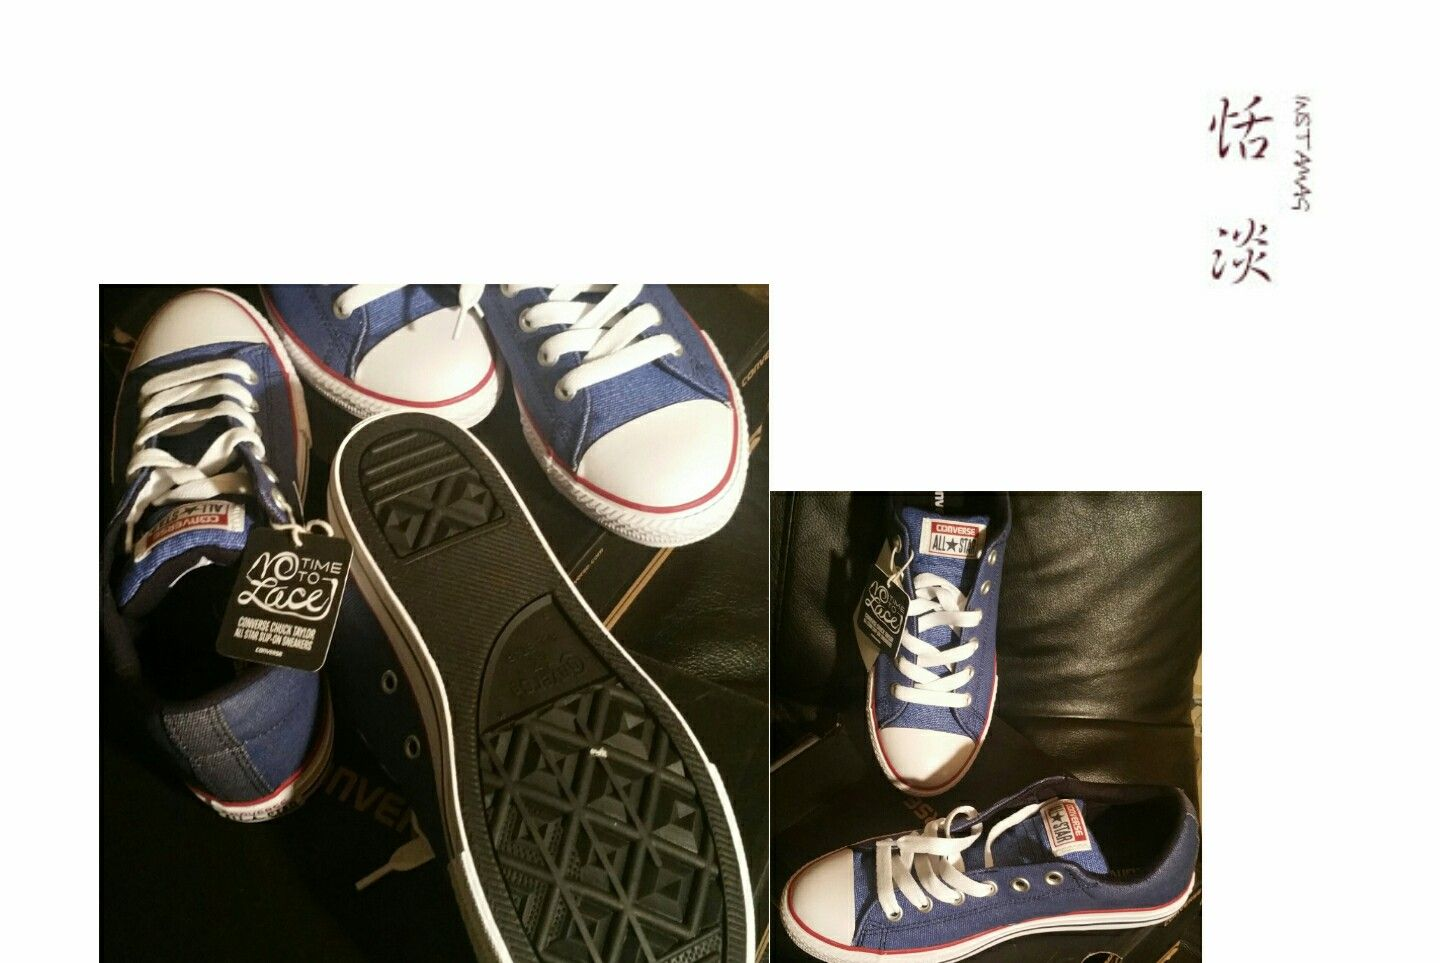 My daughters Limited Edition Converse Coated Blue Denim Sneakers ... b4ab6c3e115bc